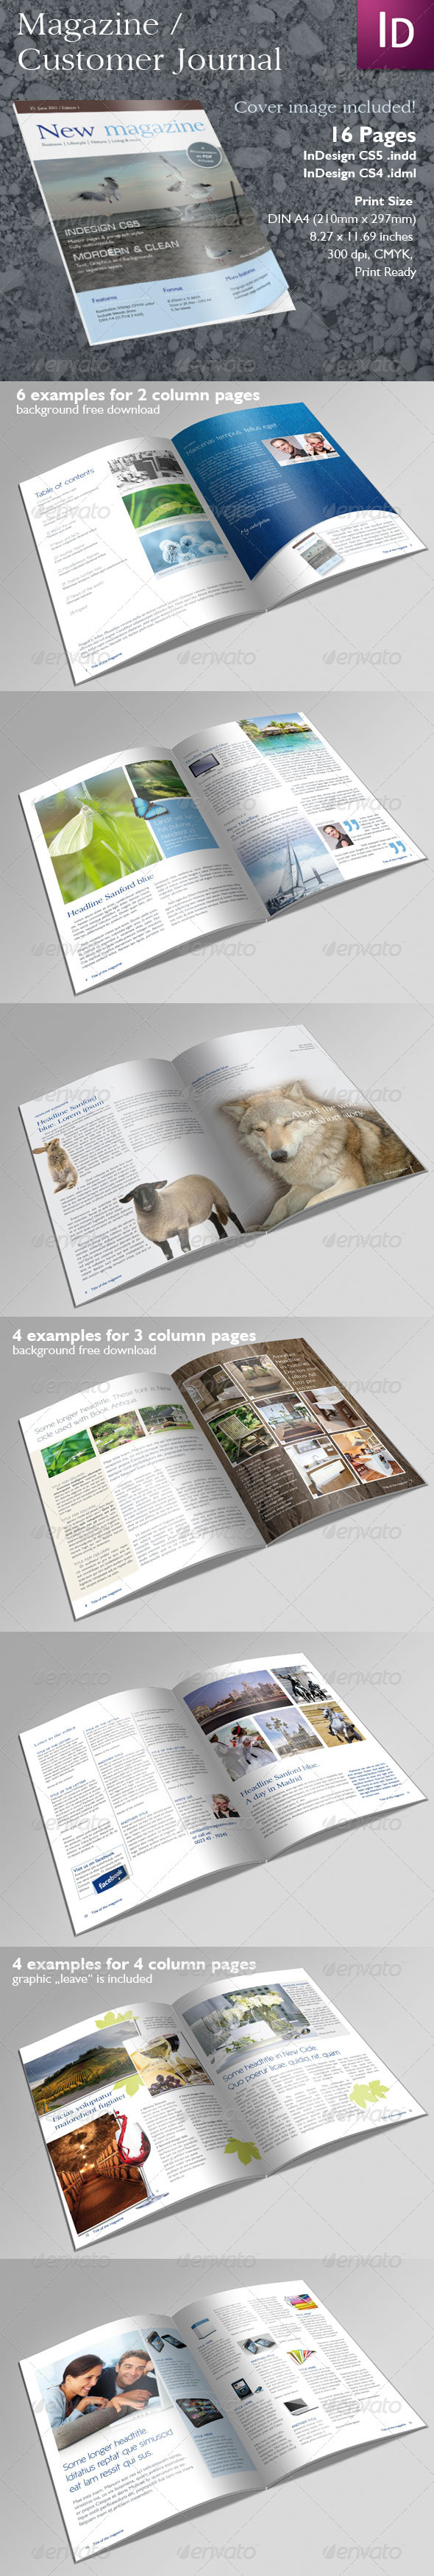 GraphicRiver Magazine or Client Journal 234729